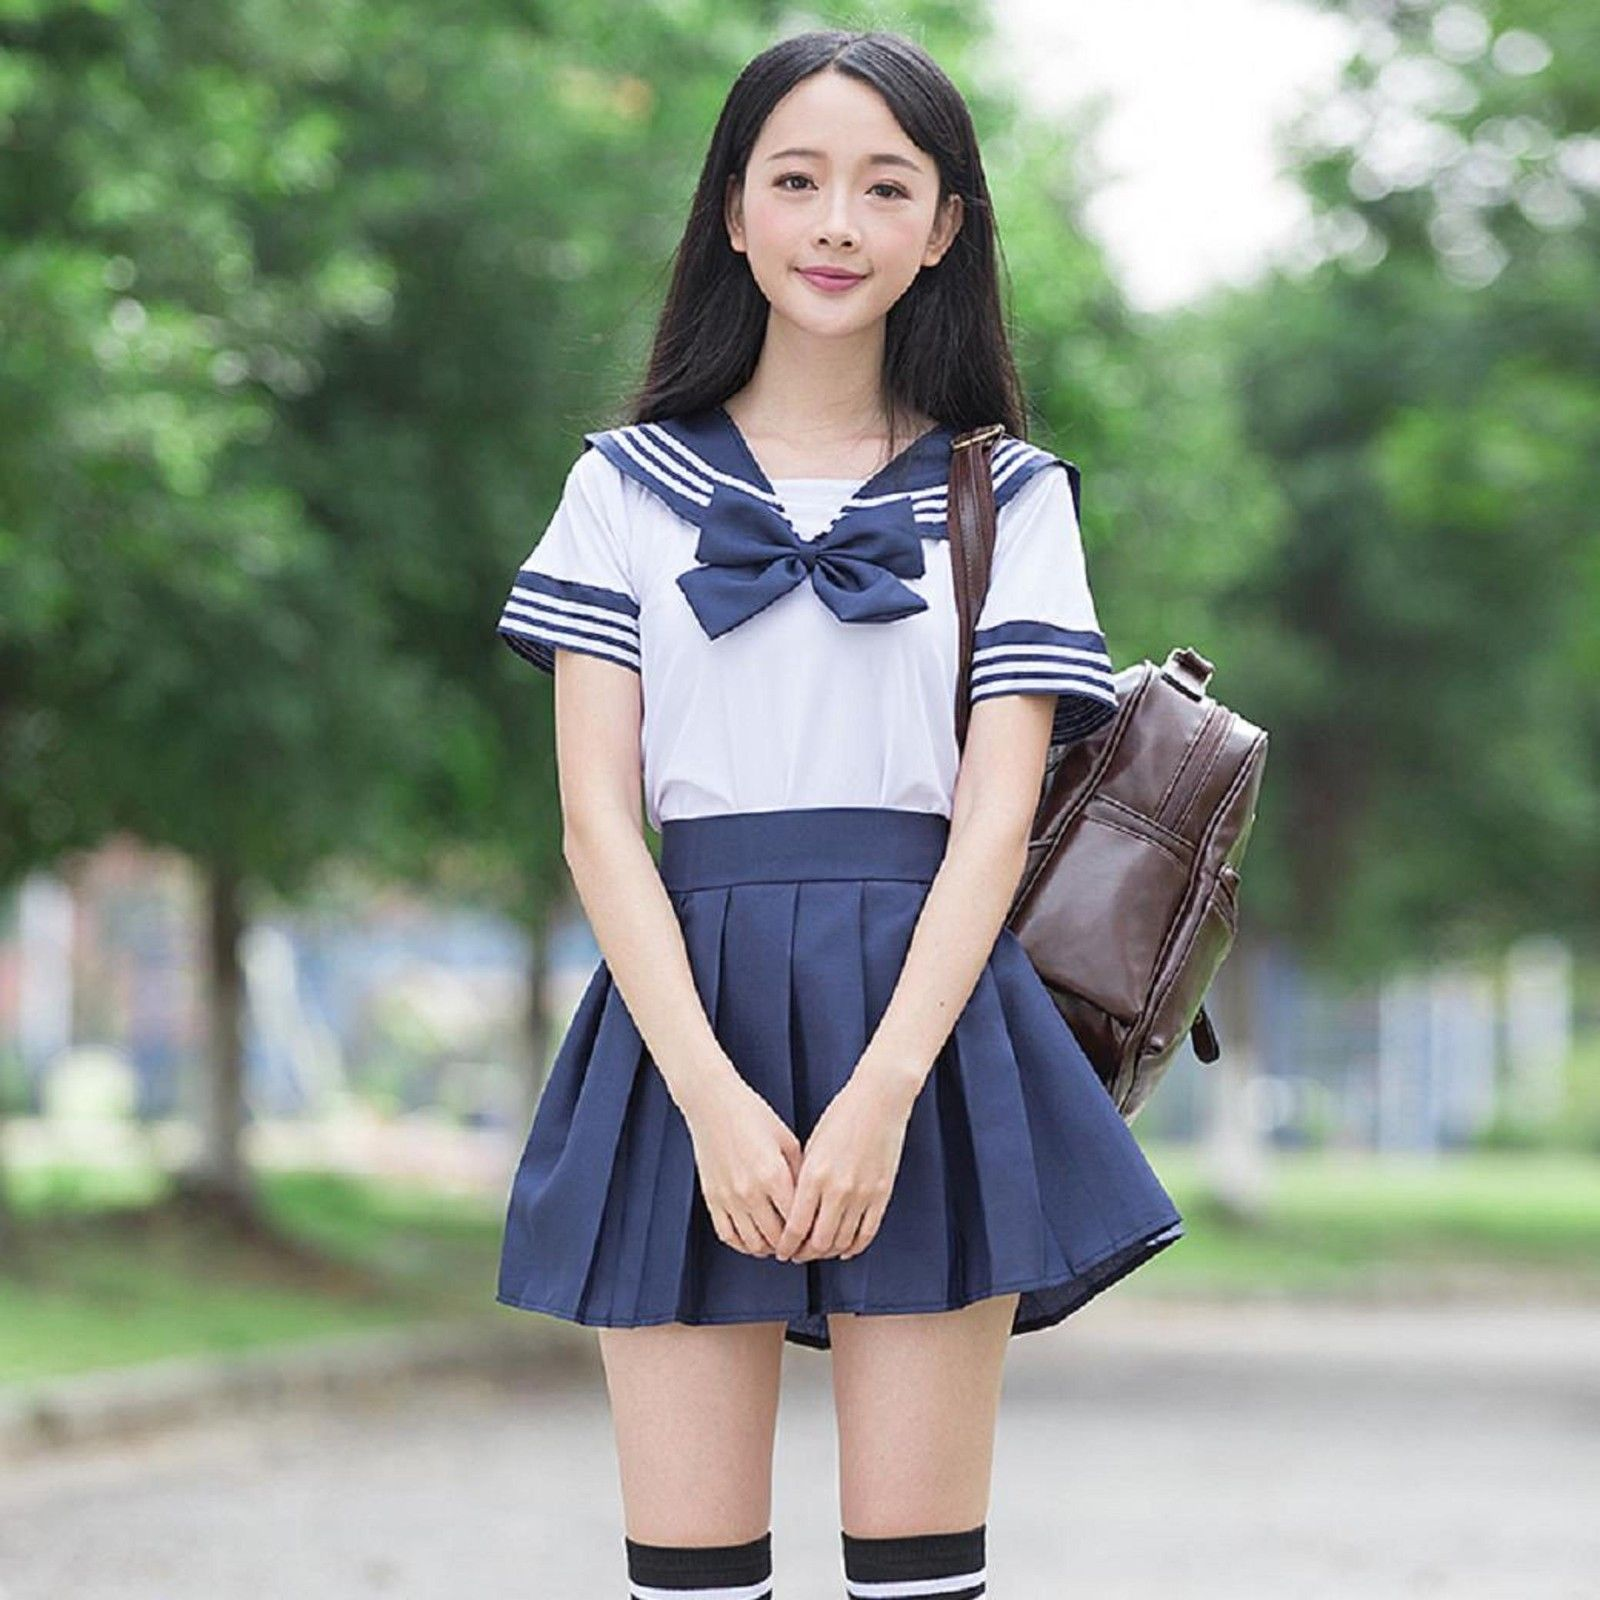 Japanese girls in costumes 15